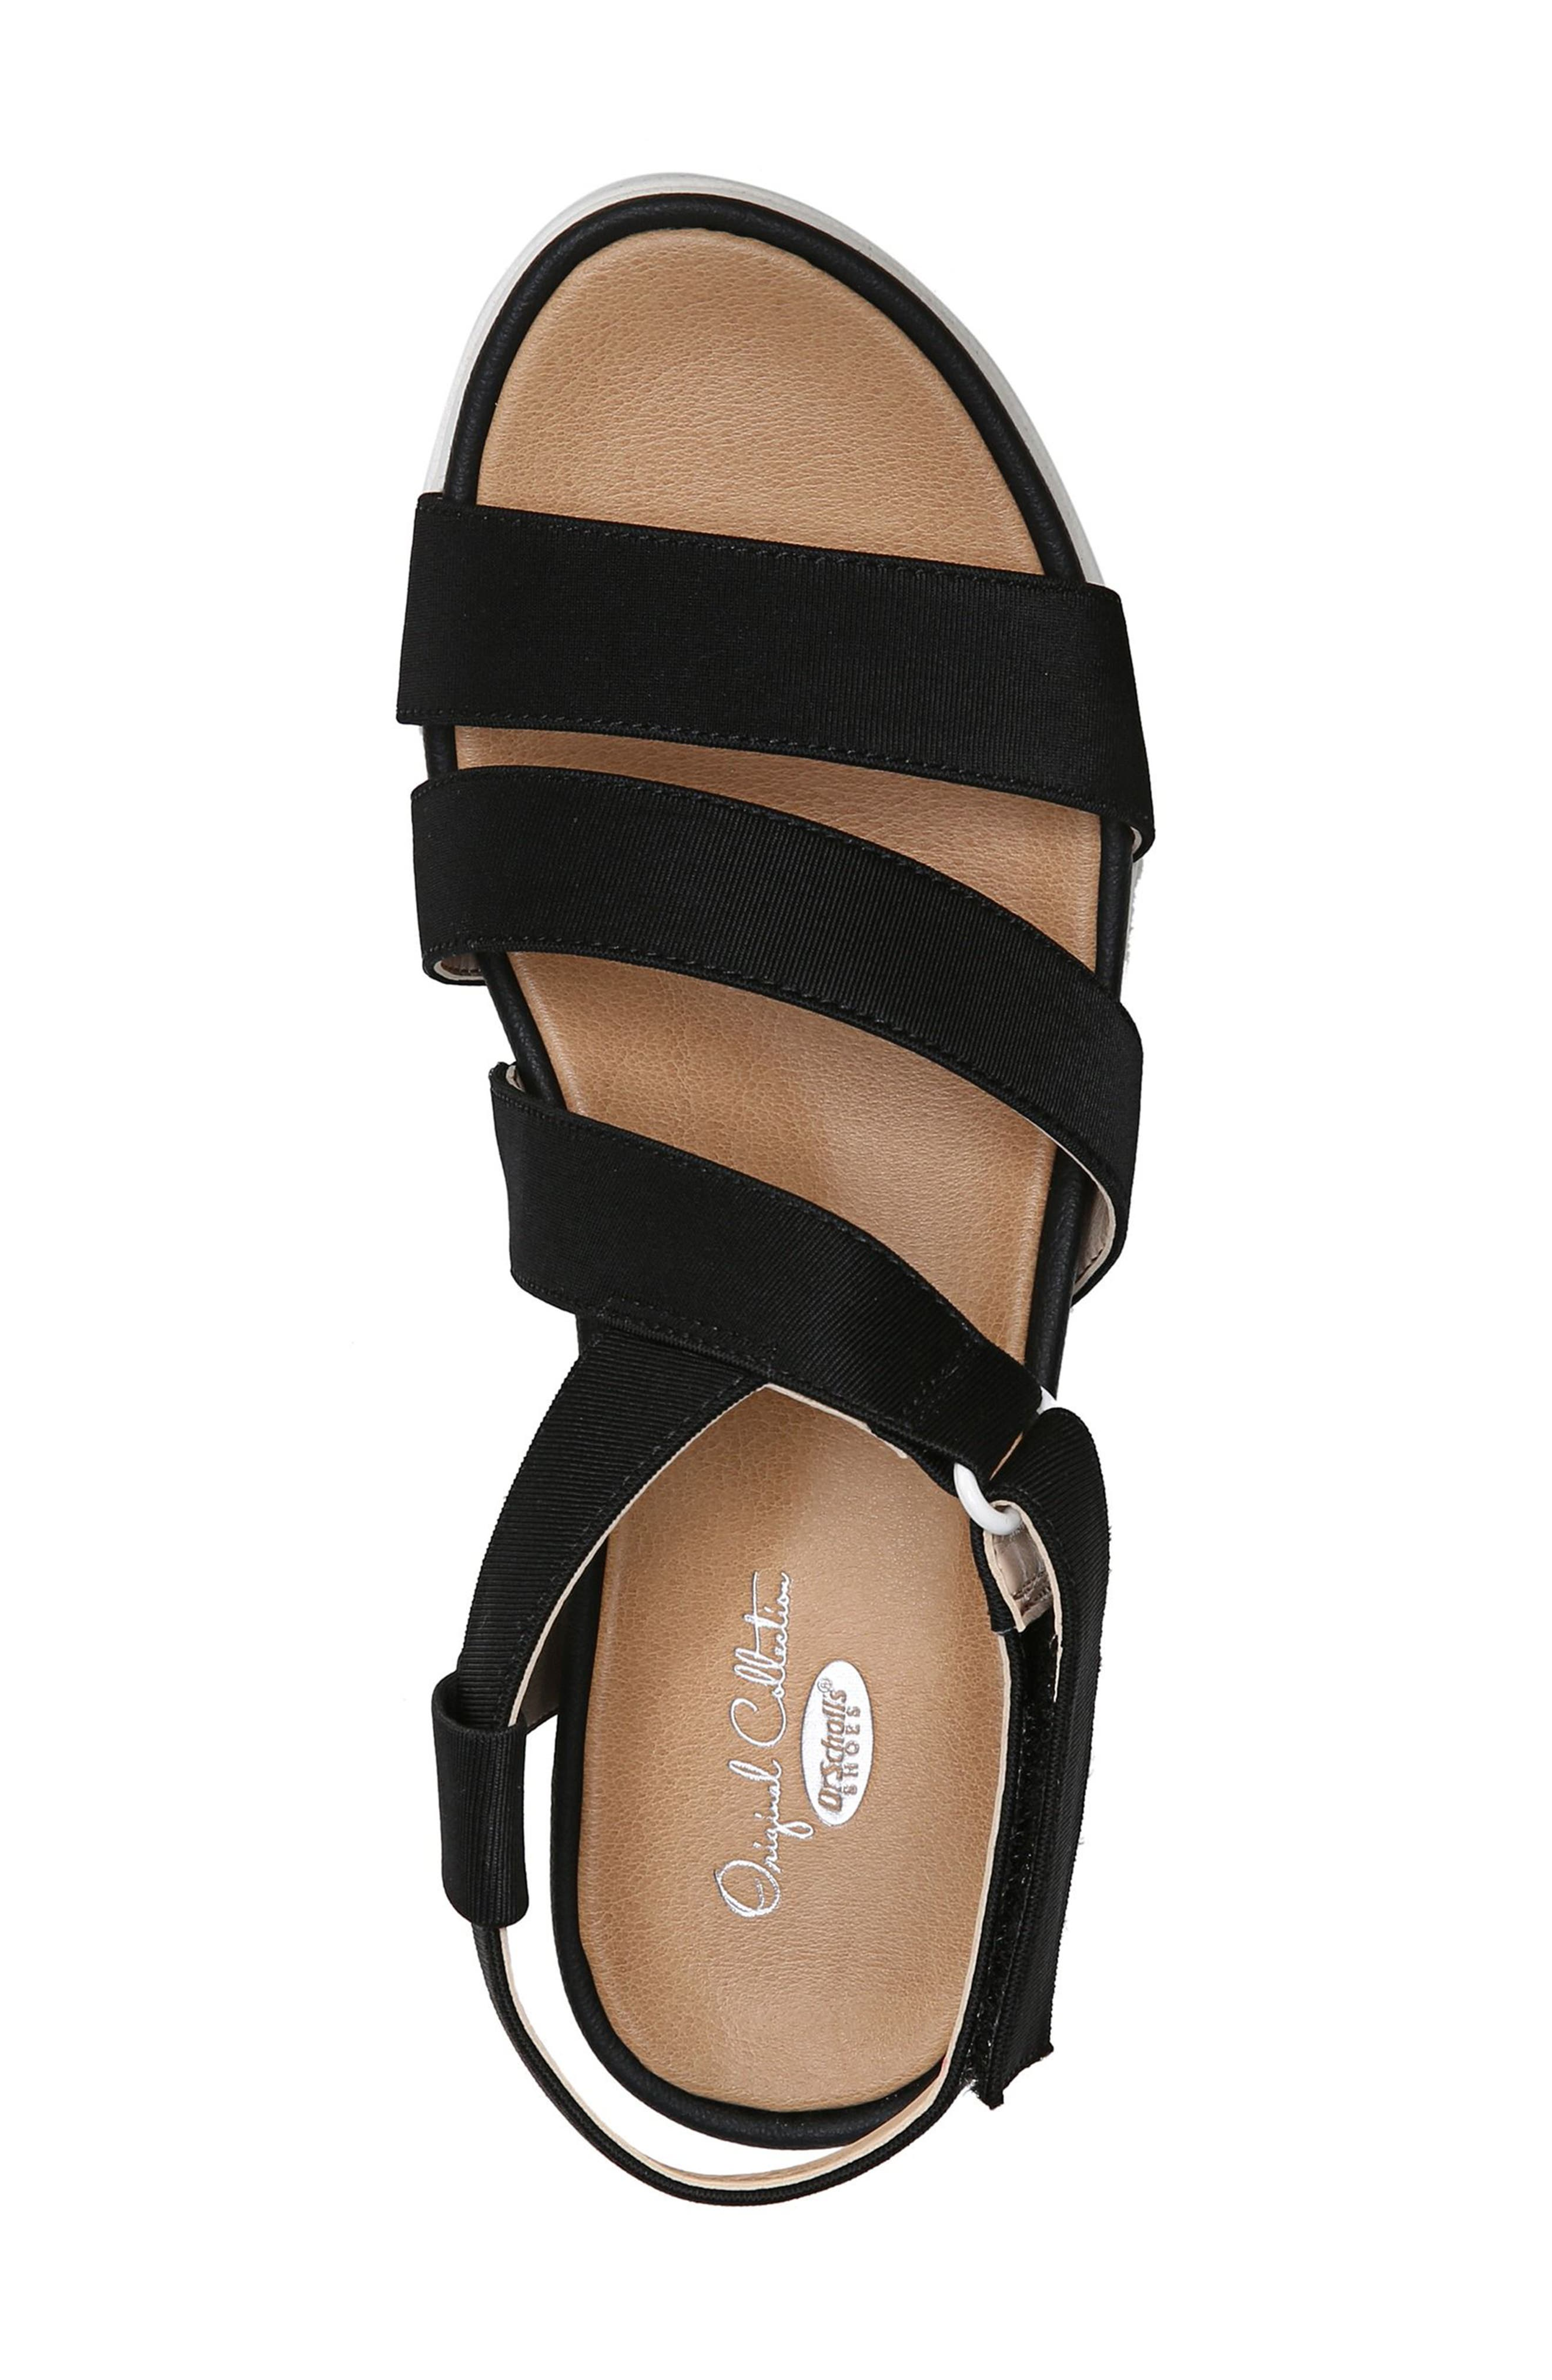 Social Wedge Sandal,                             Alternate thumbnail 5, color,                             BLACK